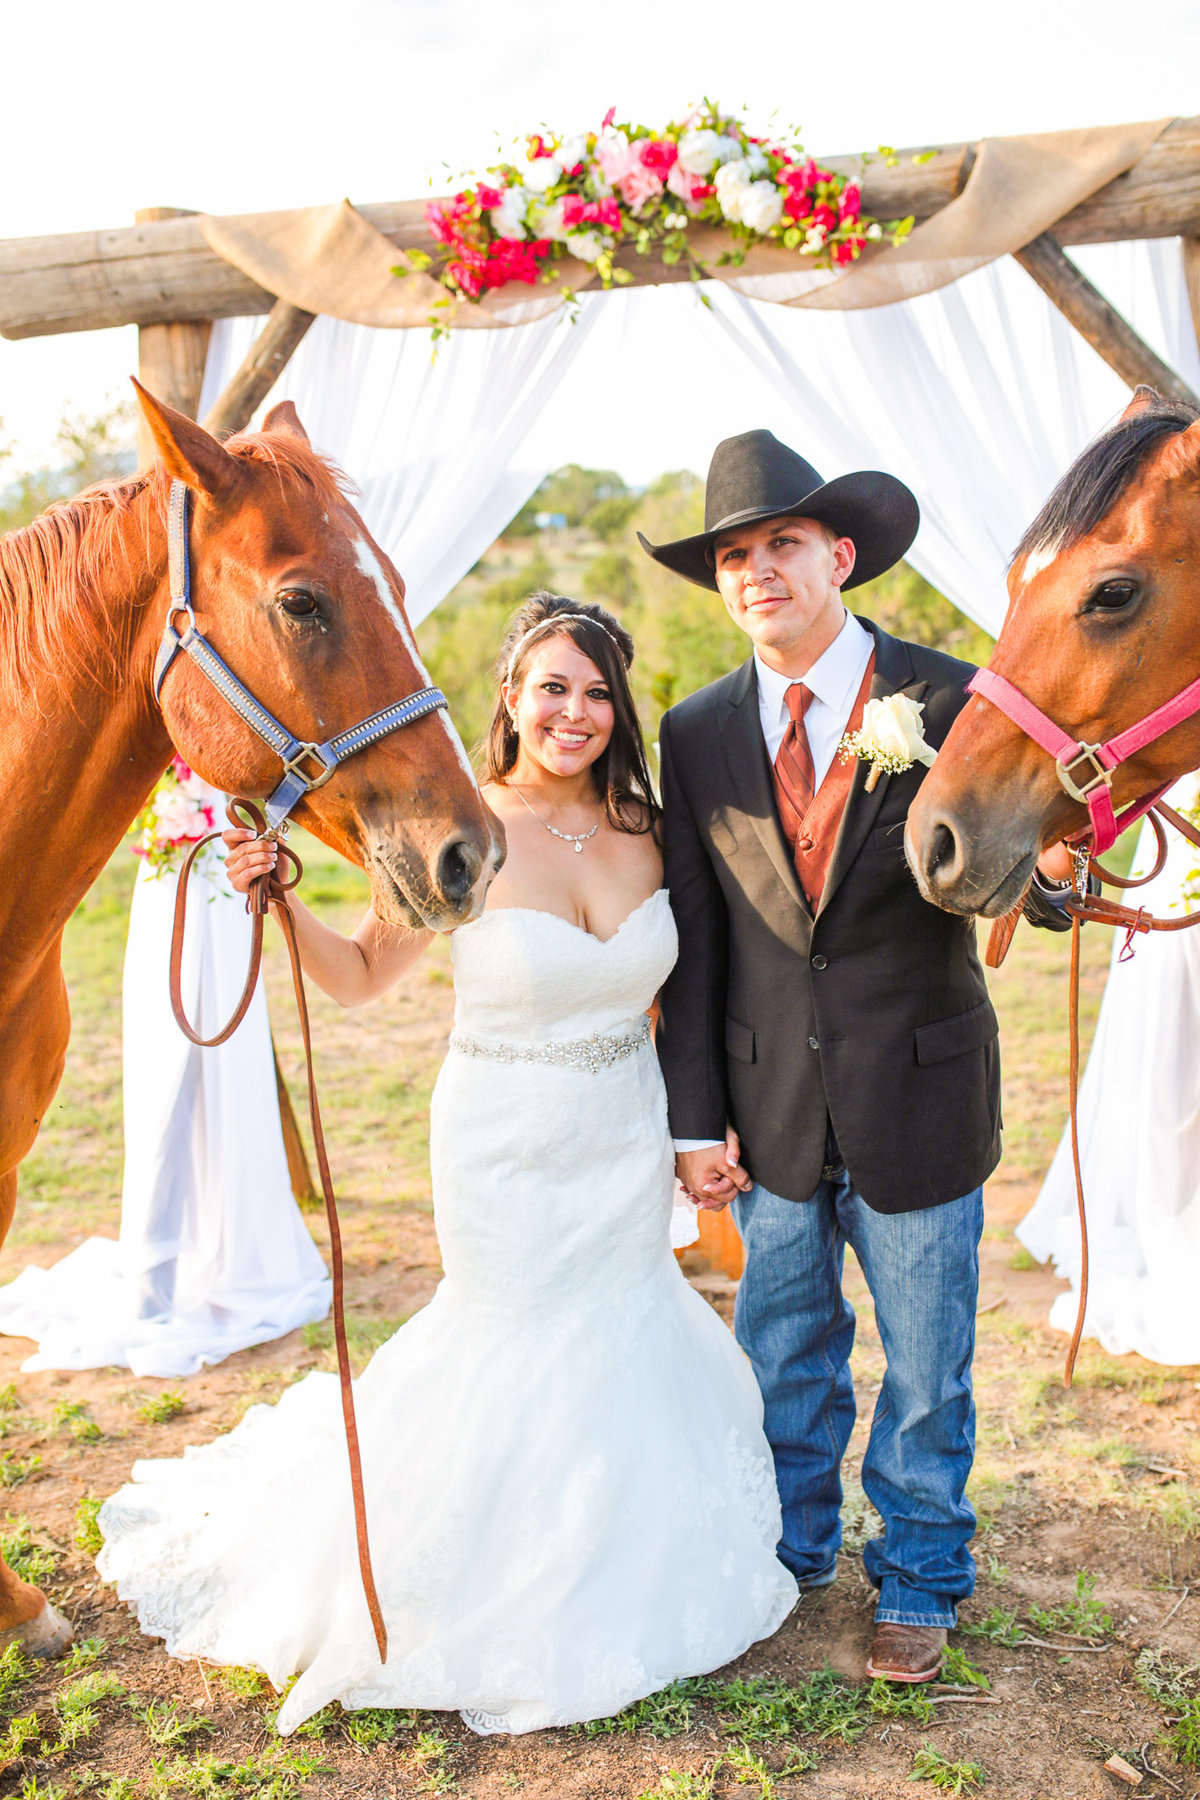 Edgewood-New-Mexico_Country-Wedding-Photographer_www.tylerbrooke.com_Kate-Kauffman-19-of-35-1